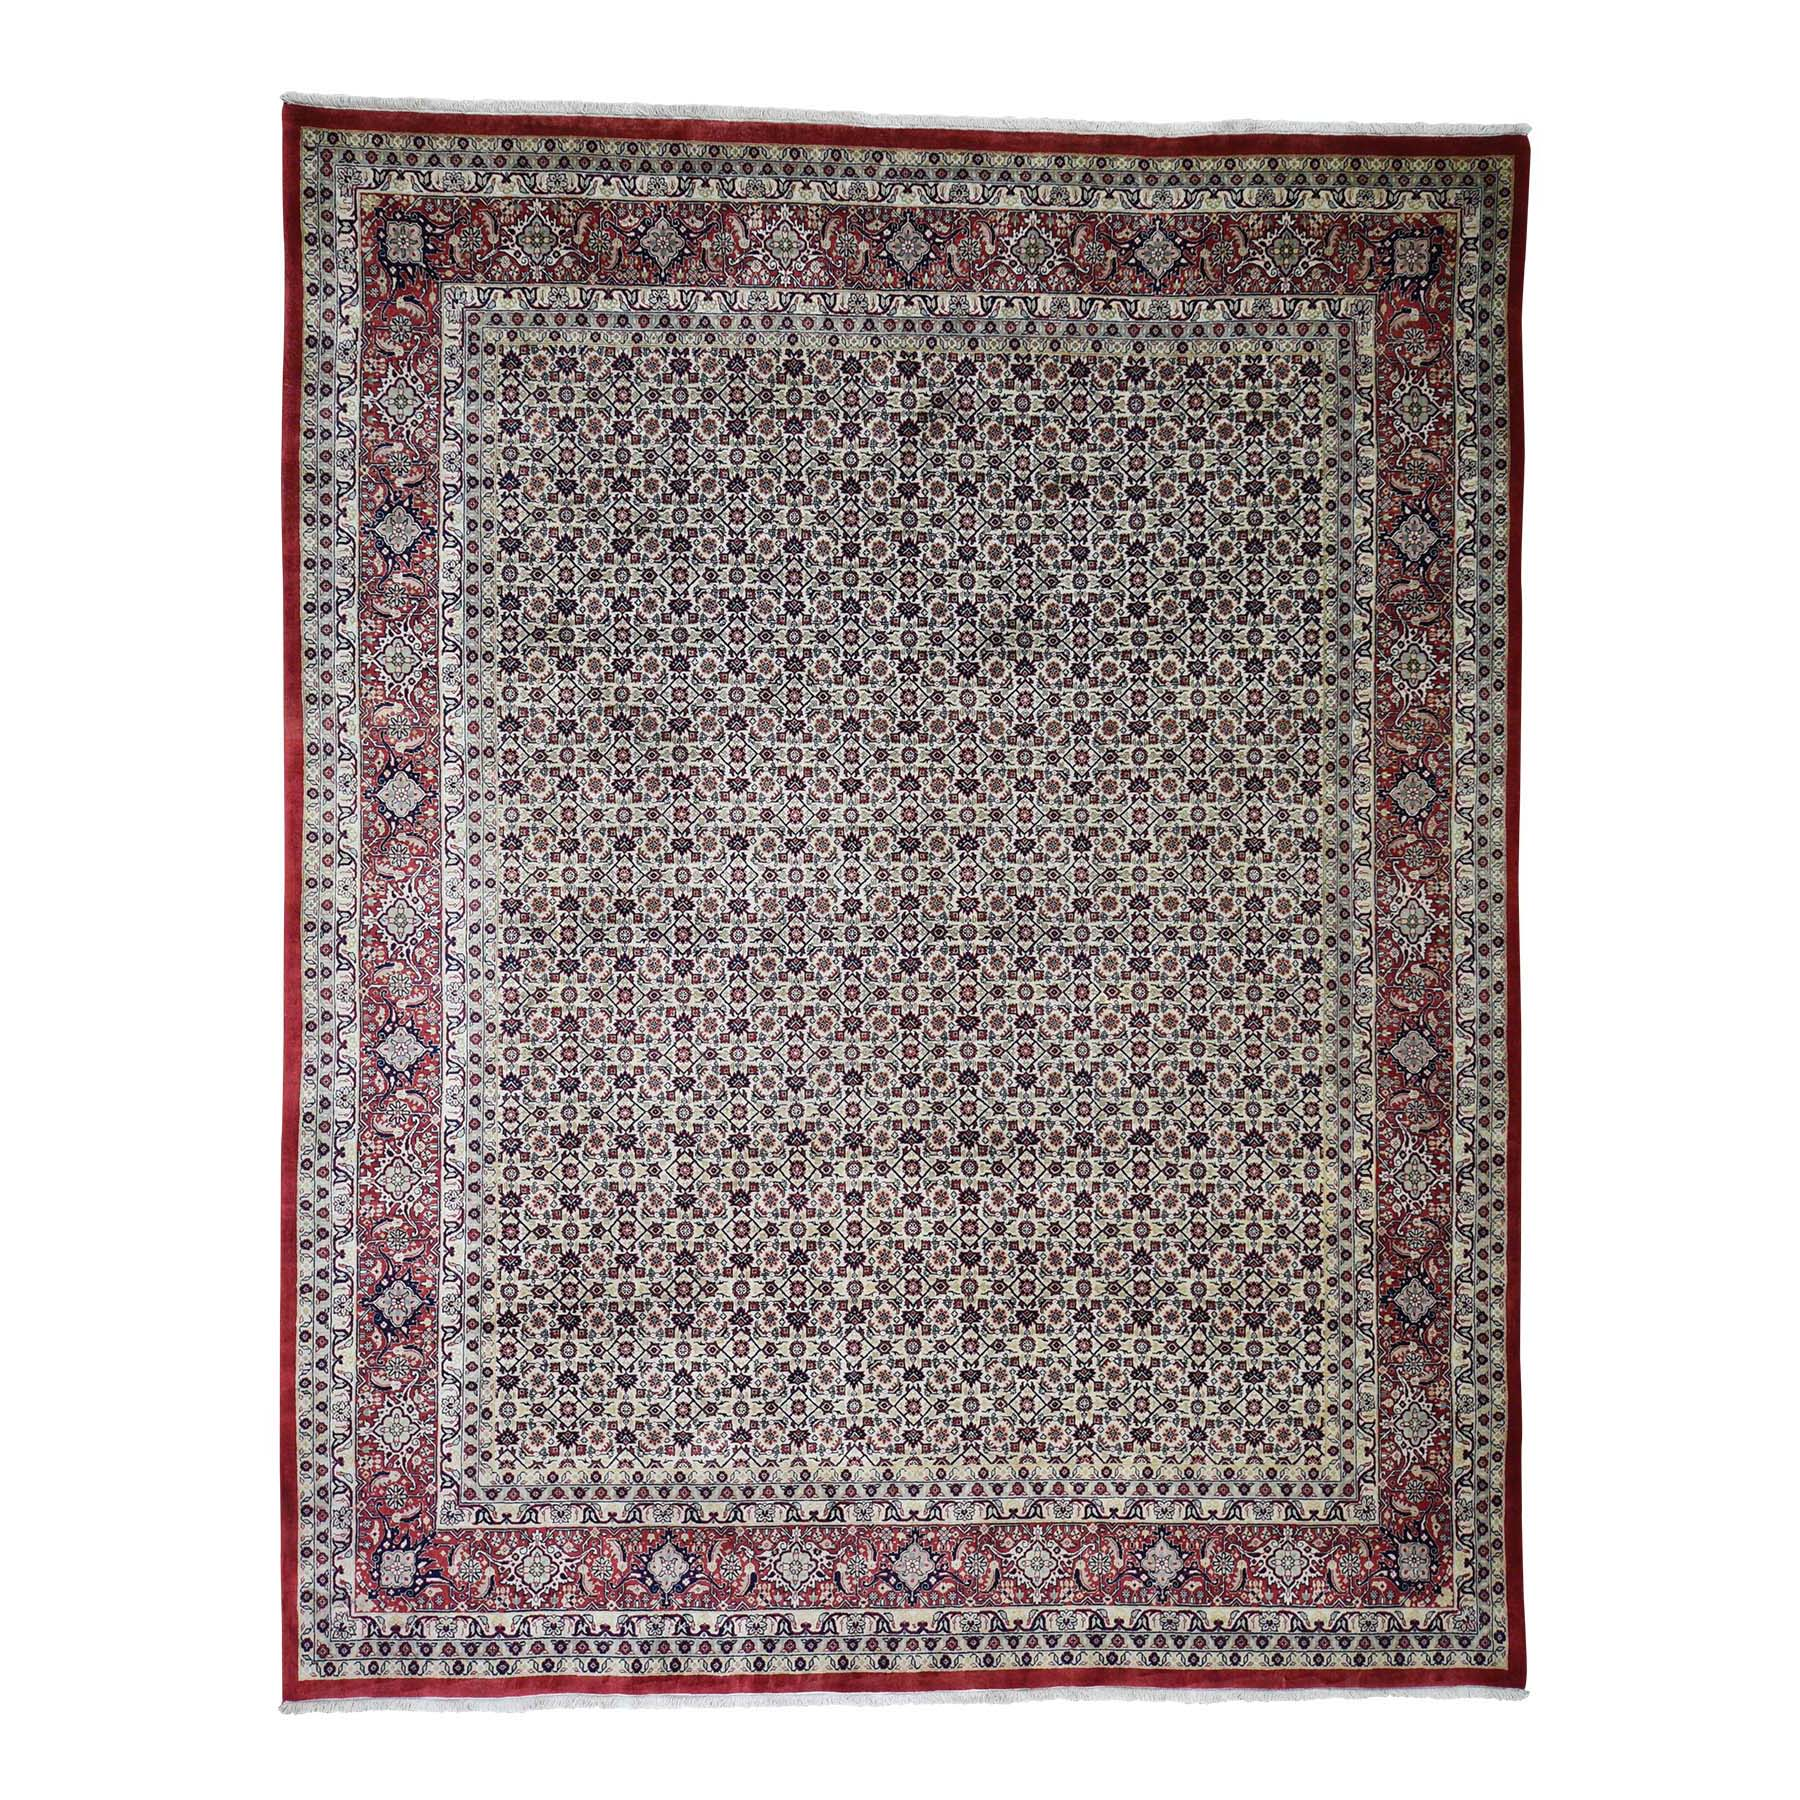 8'x10' Super Fine Bijar 300 Kpsi All Over Design Hand Woven Oriental Rug